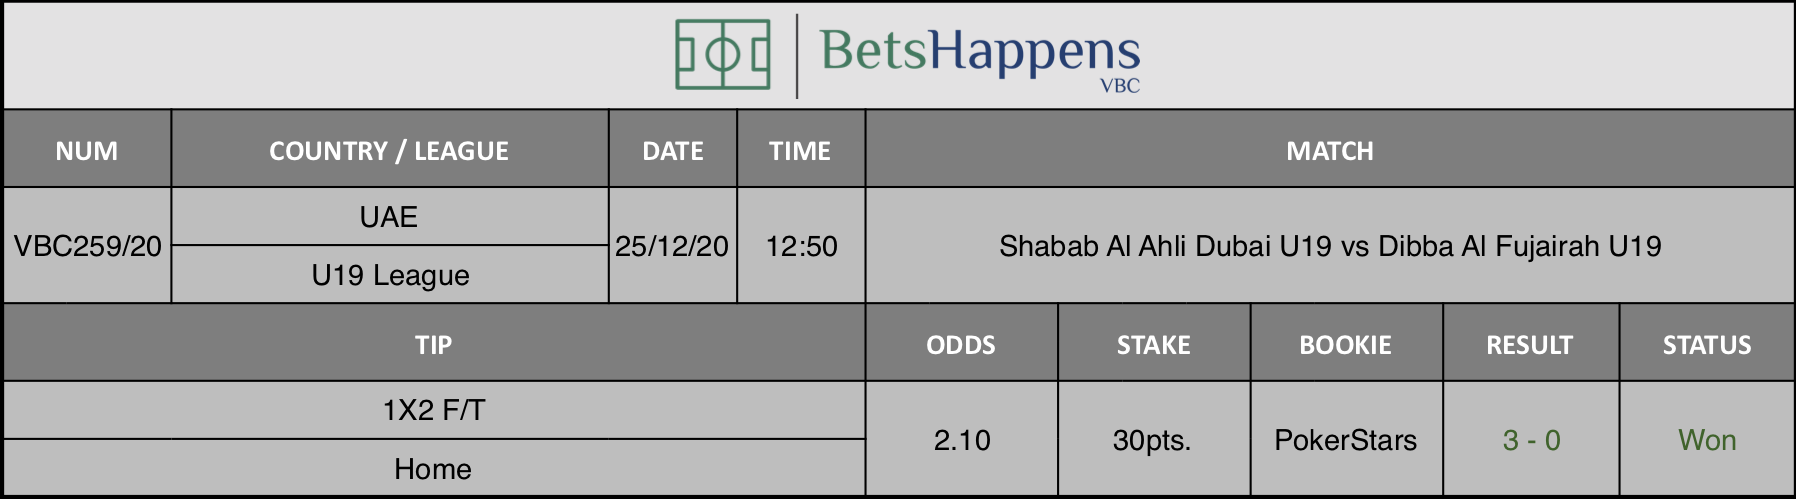 Results of our tip for the Shabab Al Ahli Dubai U19 vs Dibba Al Fujairah U19 match where 1X2 F/T Home is recommended.